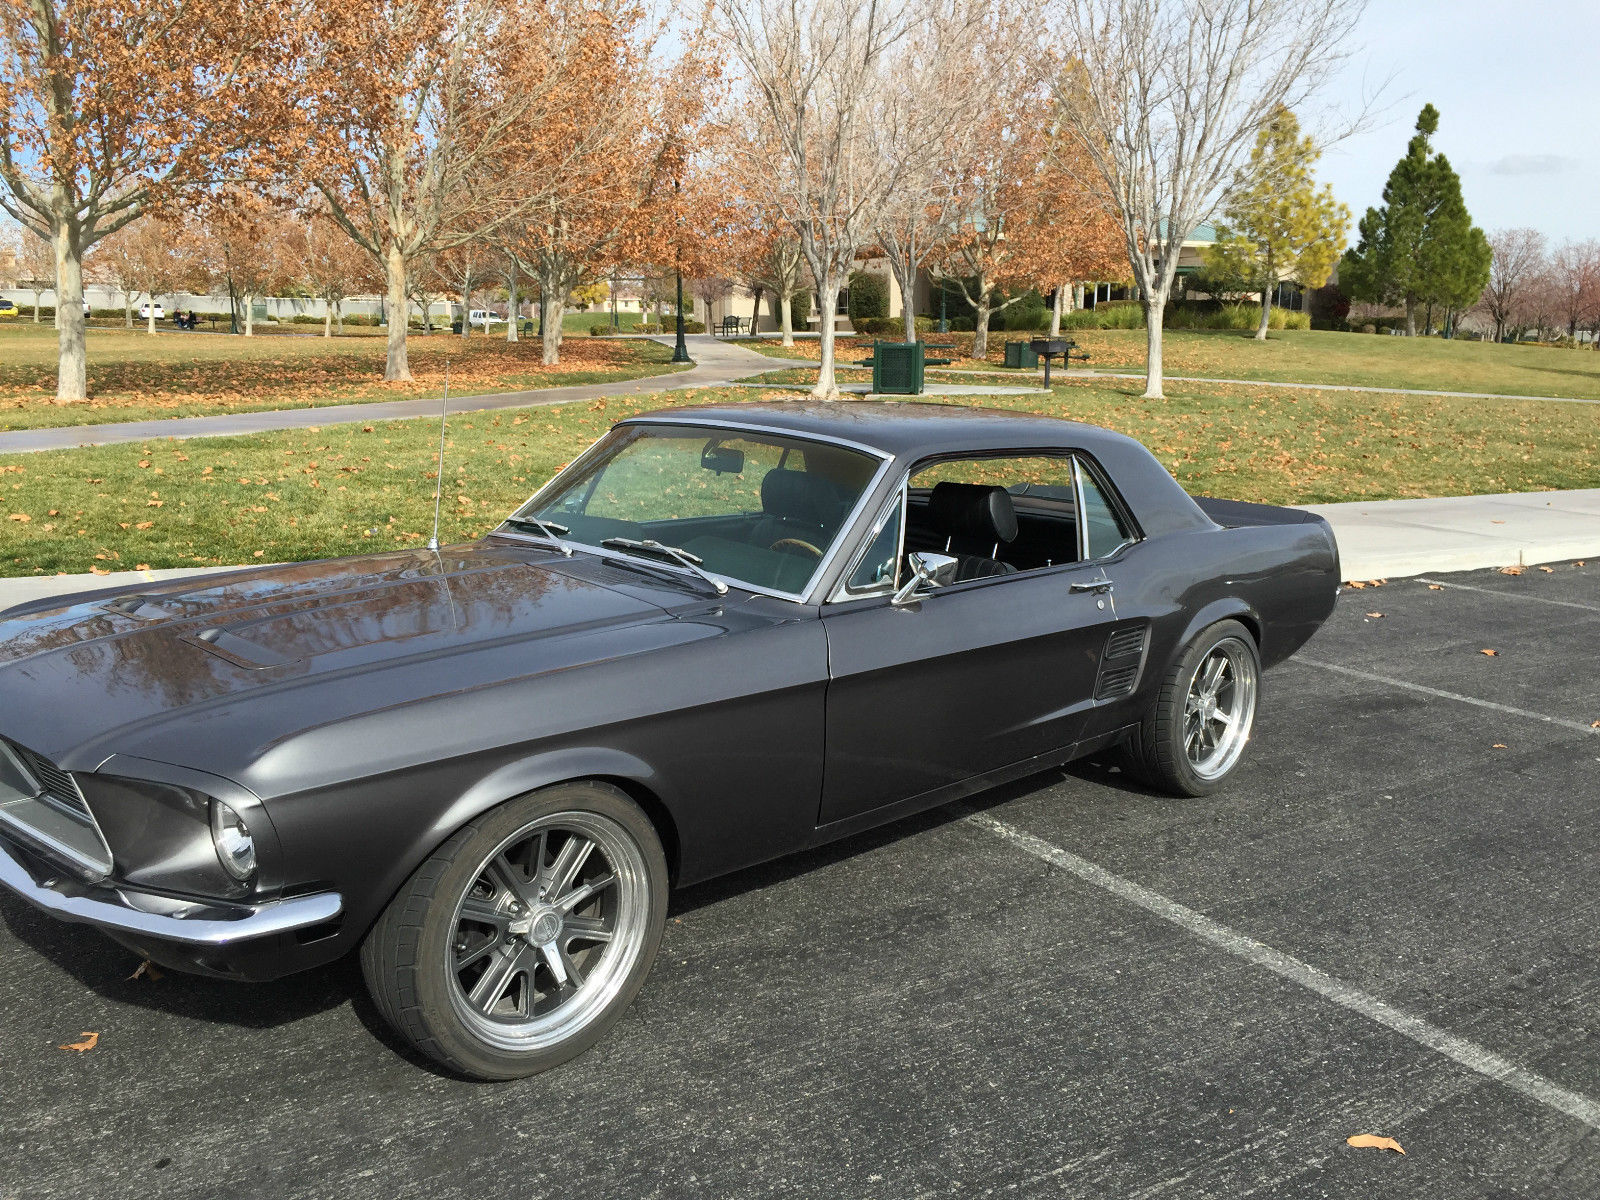 1967 ford mustang coupe restomod whi pro 289 rackpinion disc brakes